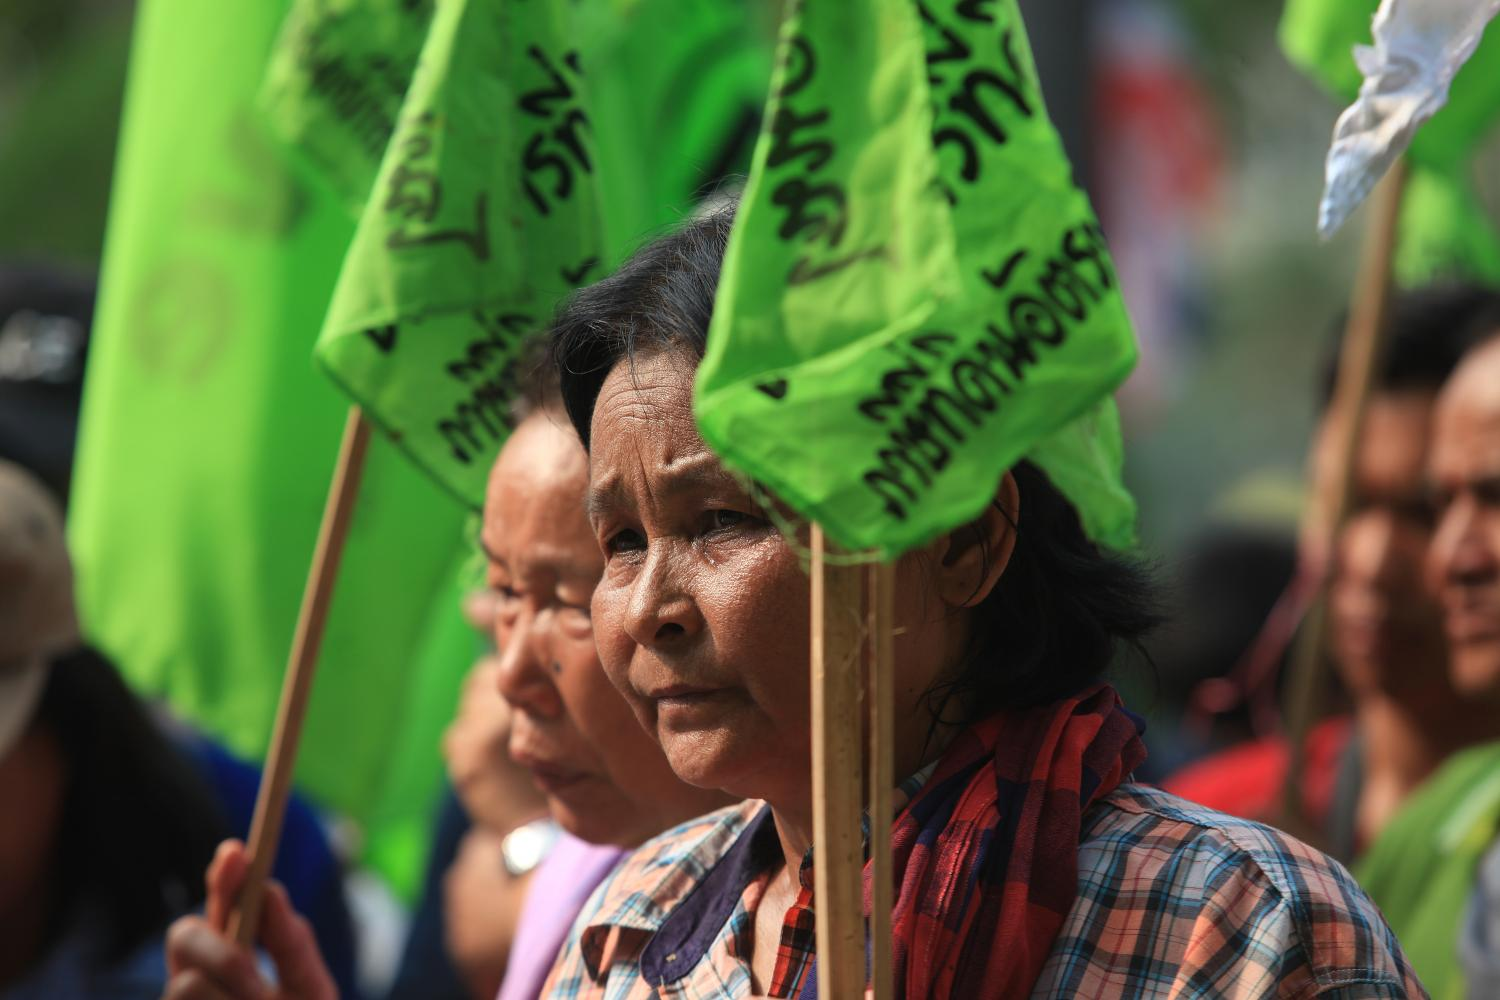 Local villagers join a demonstration led by P-Move, a grassroots group which campaigns for land rights for the poor, in February this year.  Somchai Poomlard